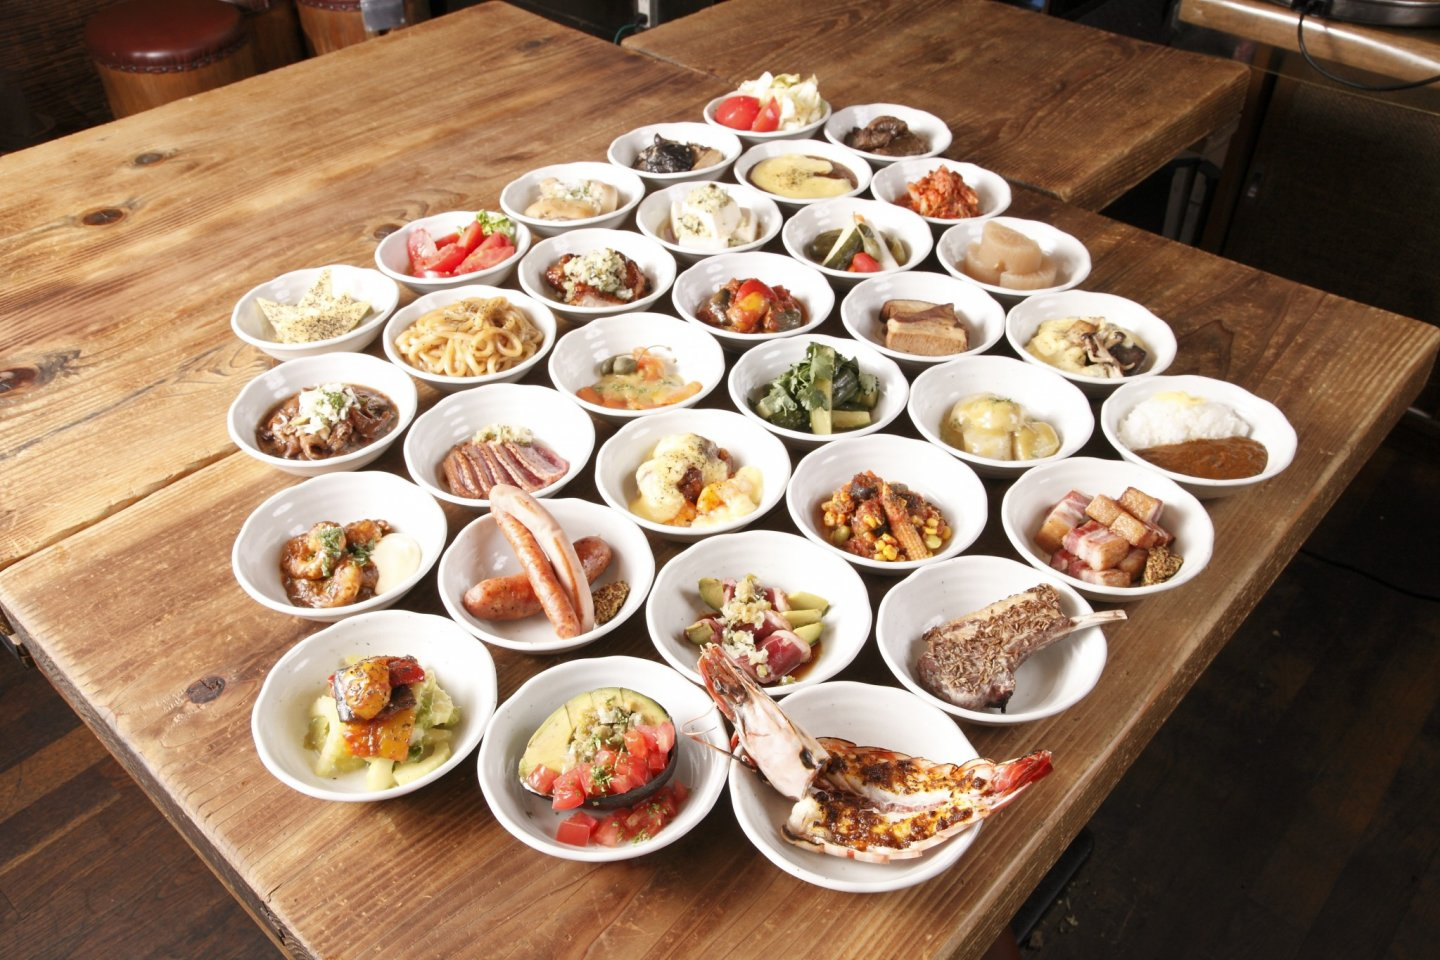 Spice tapas selection – izakaya style dishes for ¥500 each